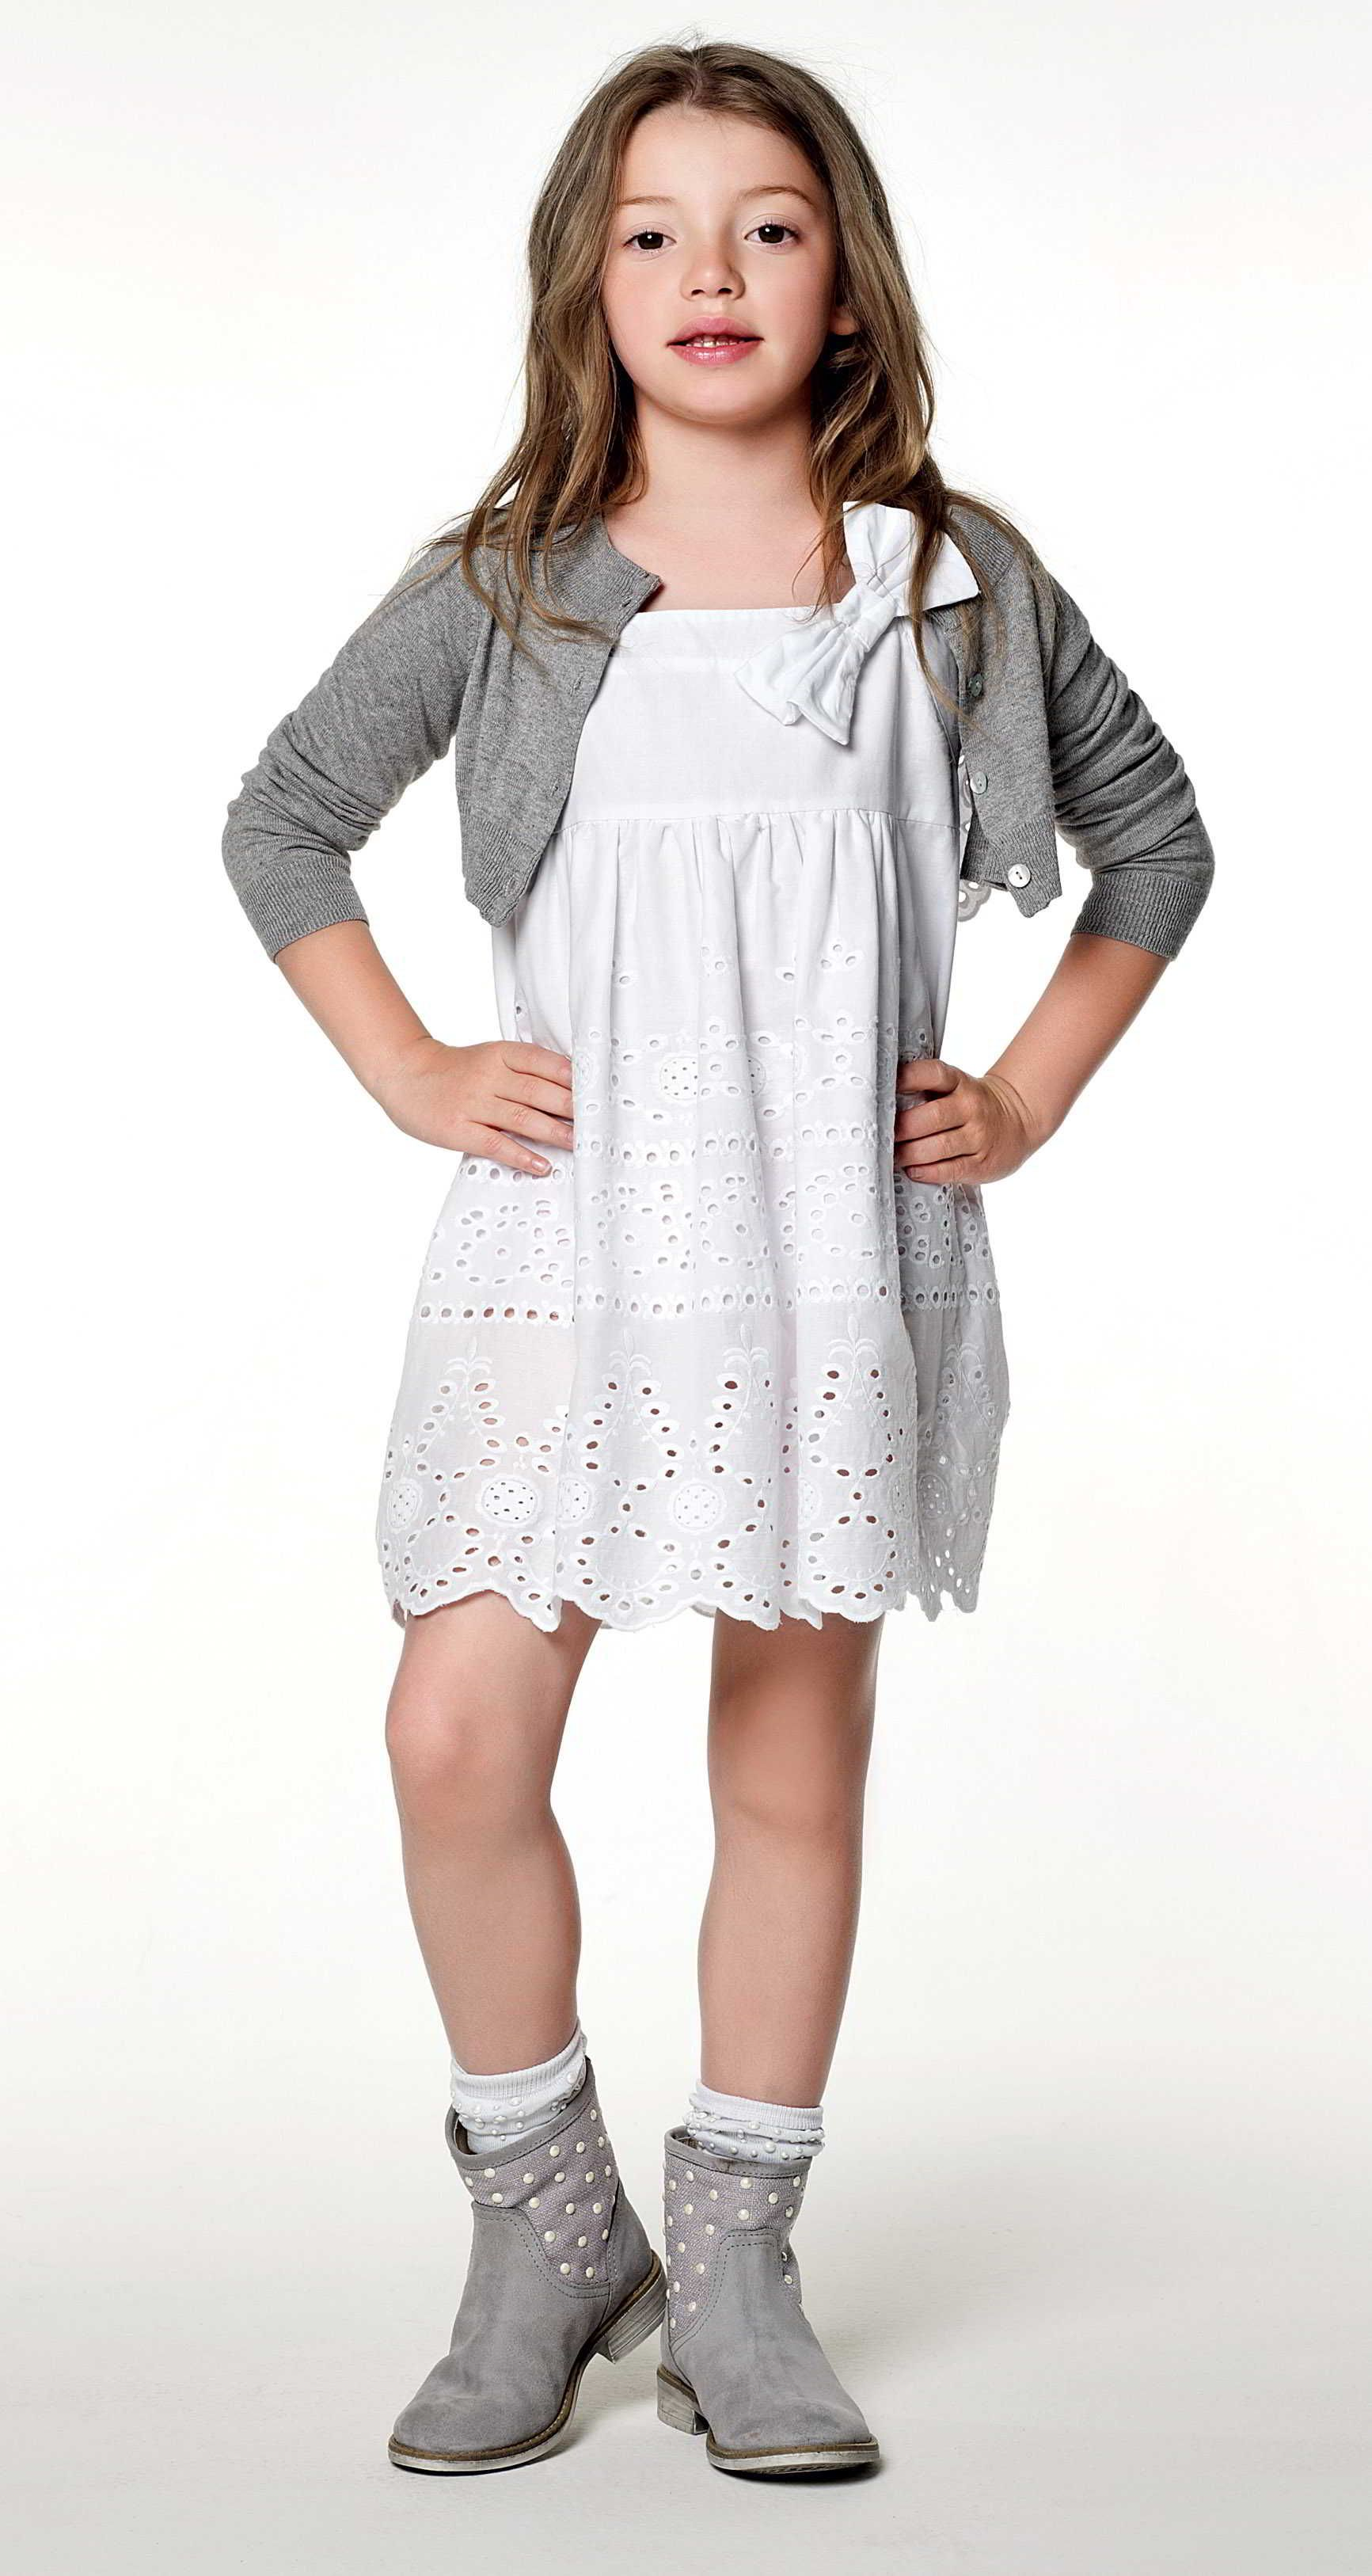 Twinset girl collection short cardigan embroidered dress with bow